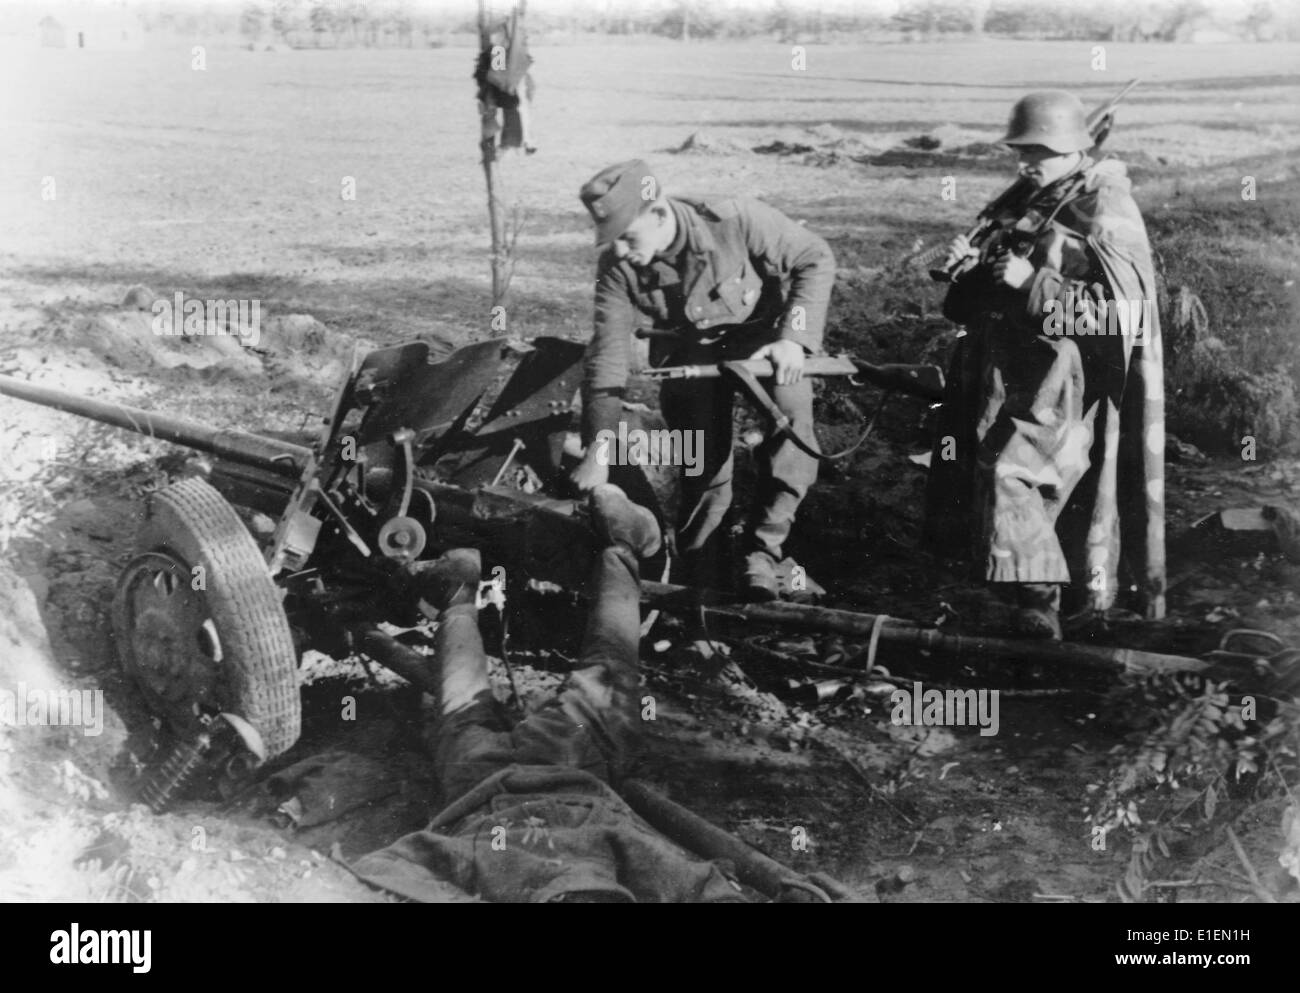 Propaganda text! from Nazi news reporting on the back of the picture: 'Out of action. The German shell detonated Stock Photo